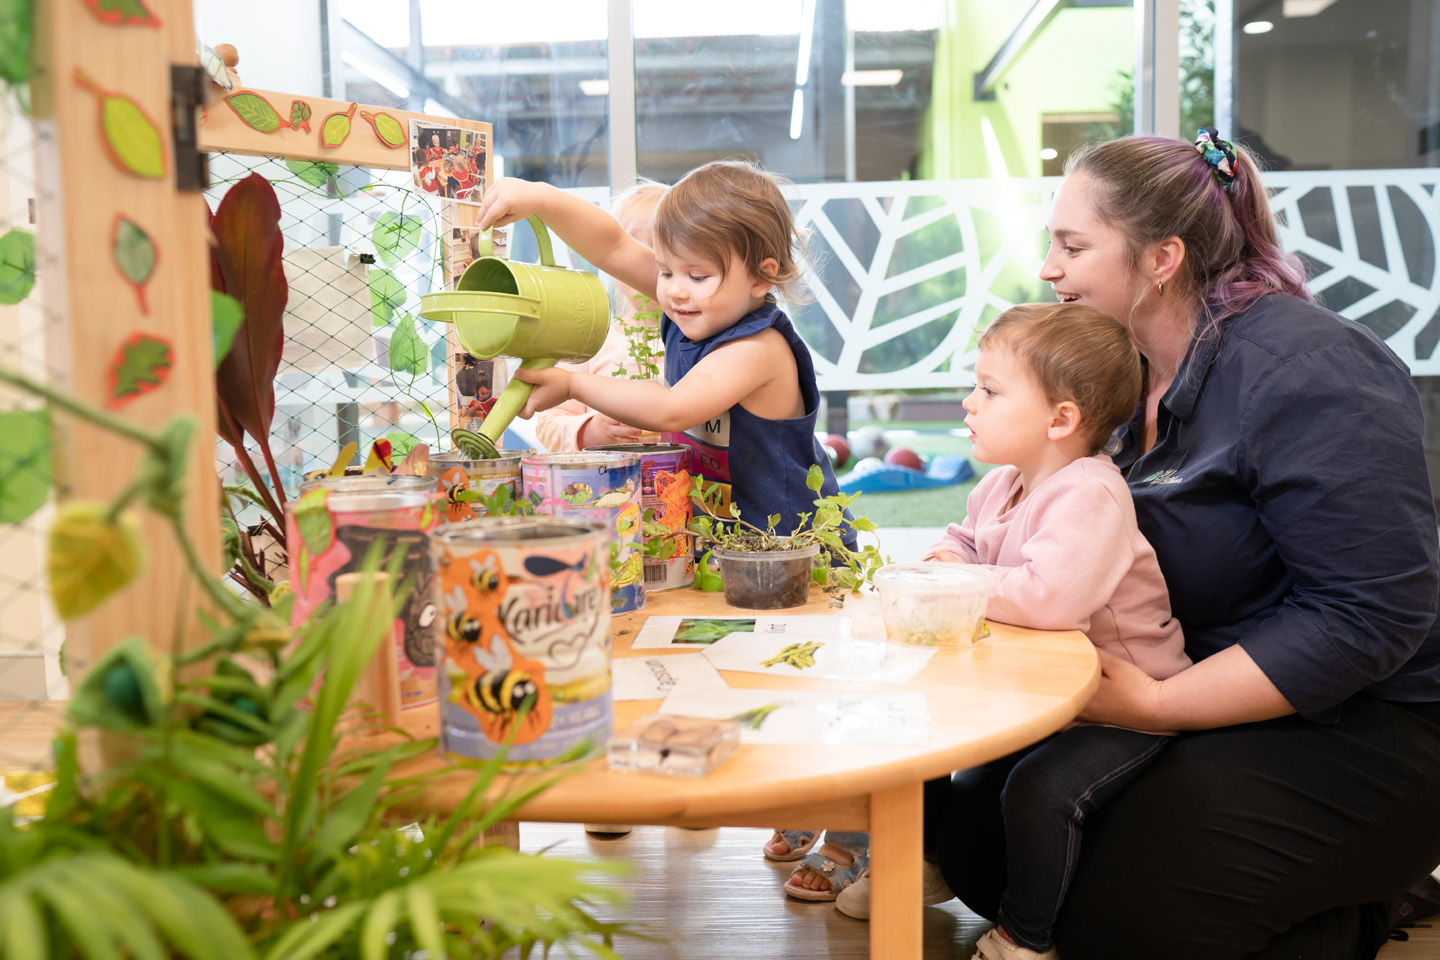 Edge Early Learning teacher gardening with kids